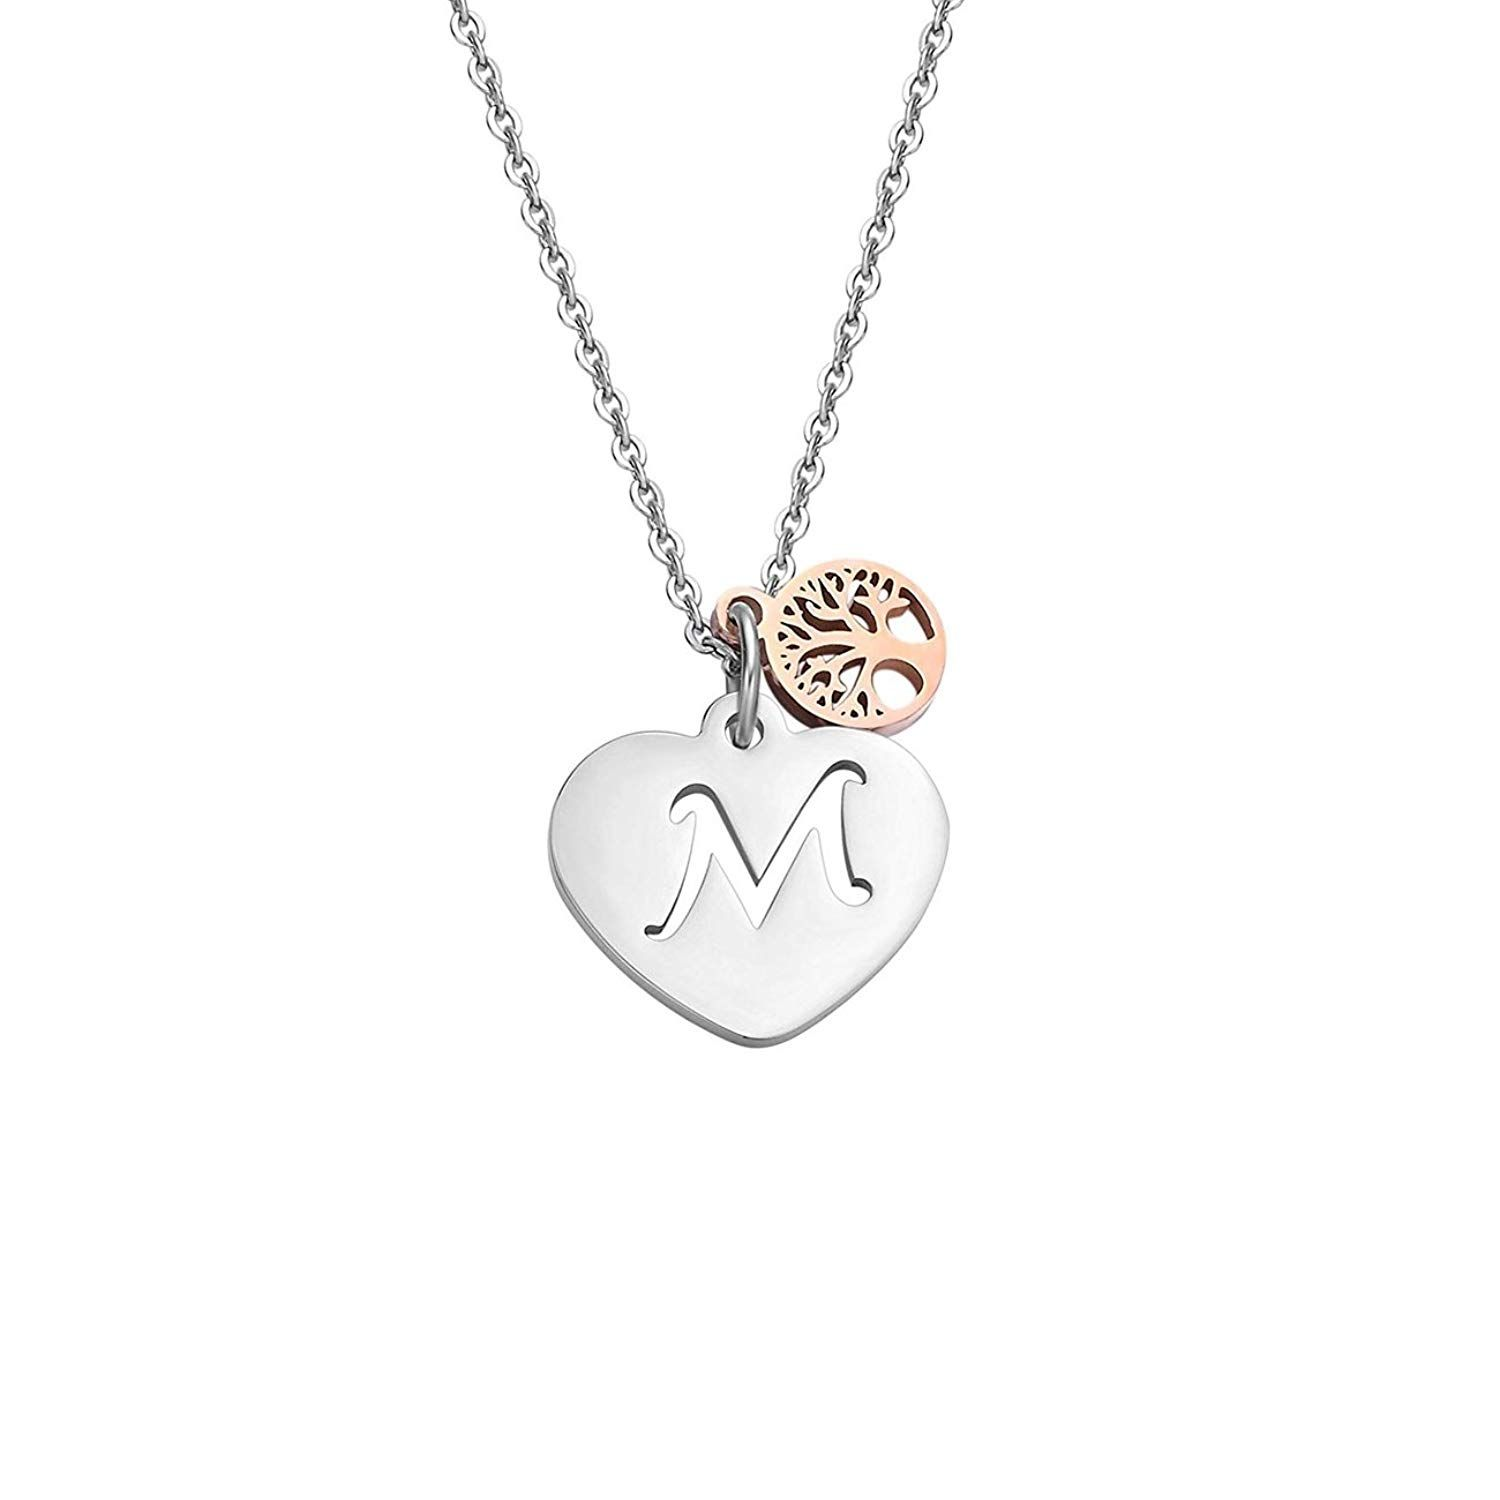 291dfb60cd9 BRBAM Initial Heart Necklace Stainless Steel Heart Pendant Hollow Out  Design Initial Necklace Tree of Life Necklace Jewelry for Girls and Women      Check ...